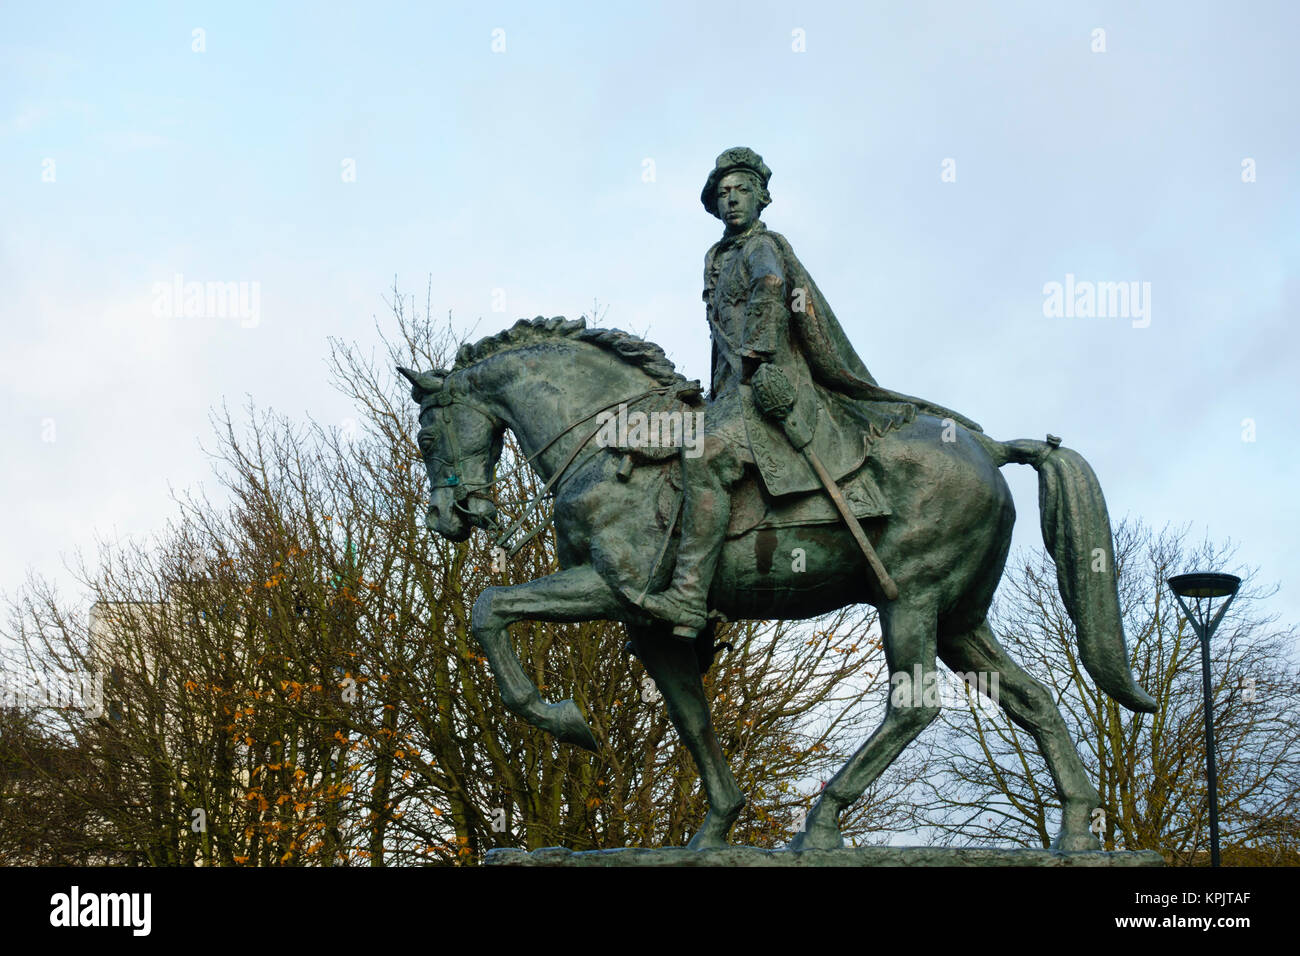 Bronze statue of Bonnie Prince Charlie on horseback in Cathedral Green, Derby, Derbyshire. - Stock Image